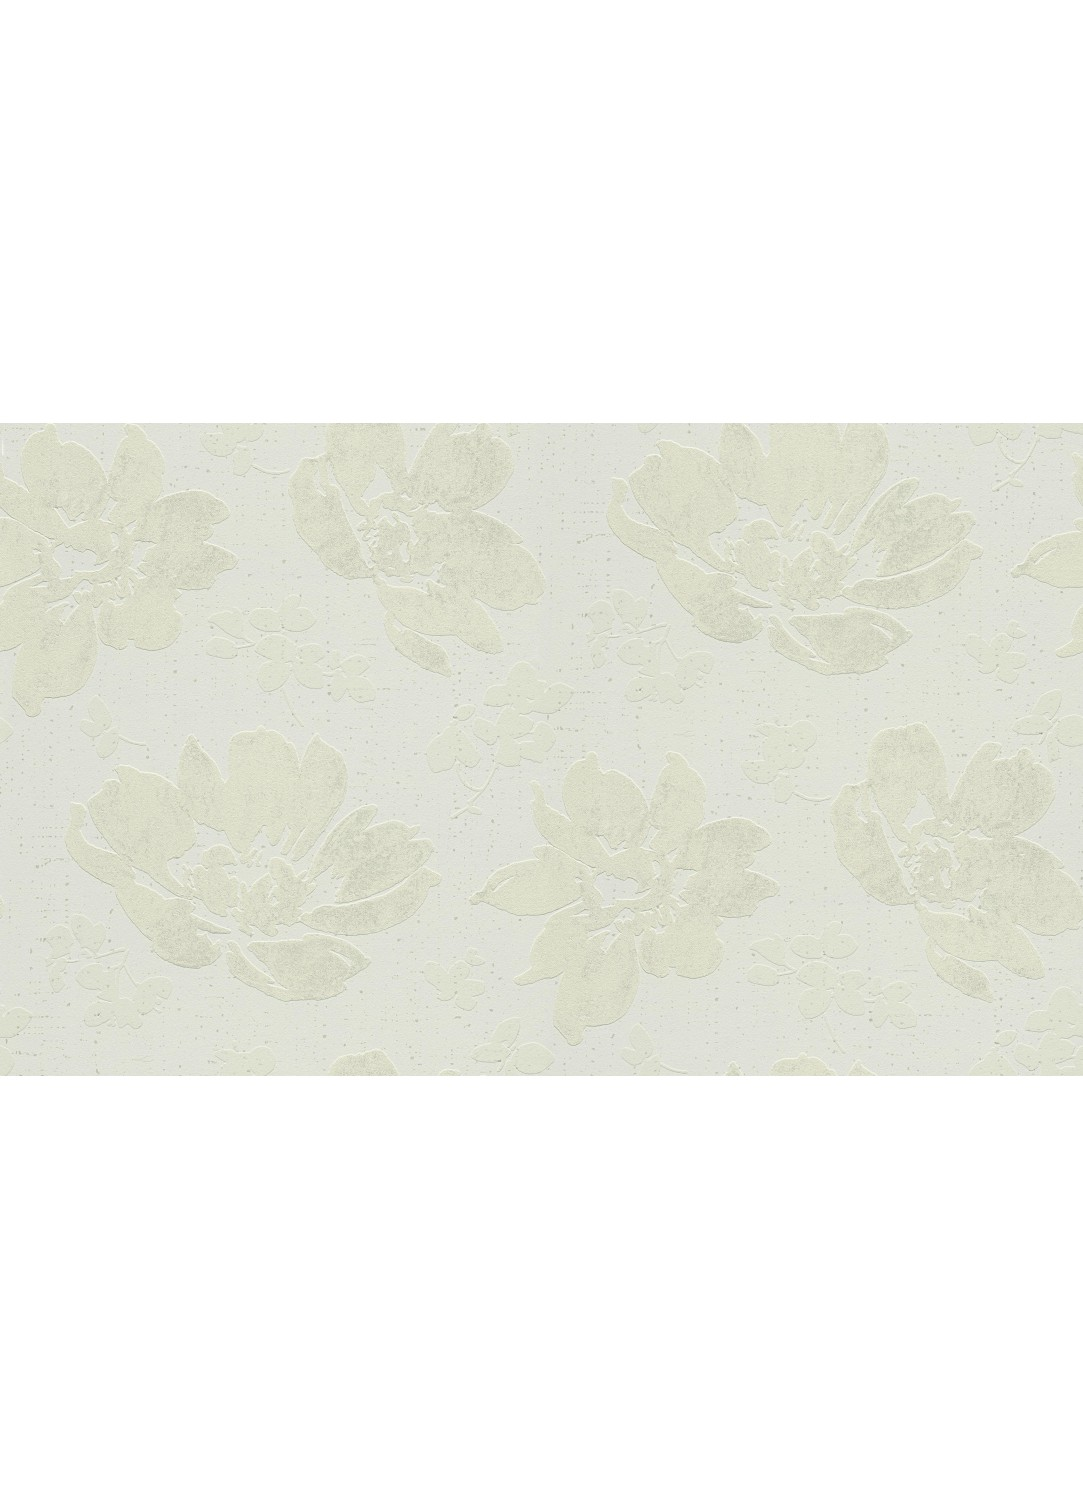 papier peint motif pivoines en relief blanc marron cafe beige vanille rose. Black Bedroom Furniture Sets. Home Design Ideas